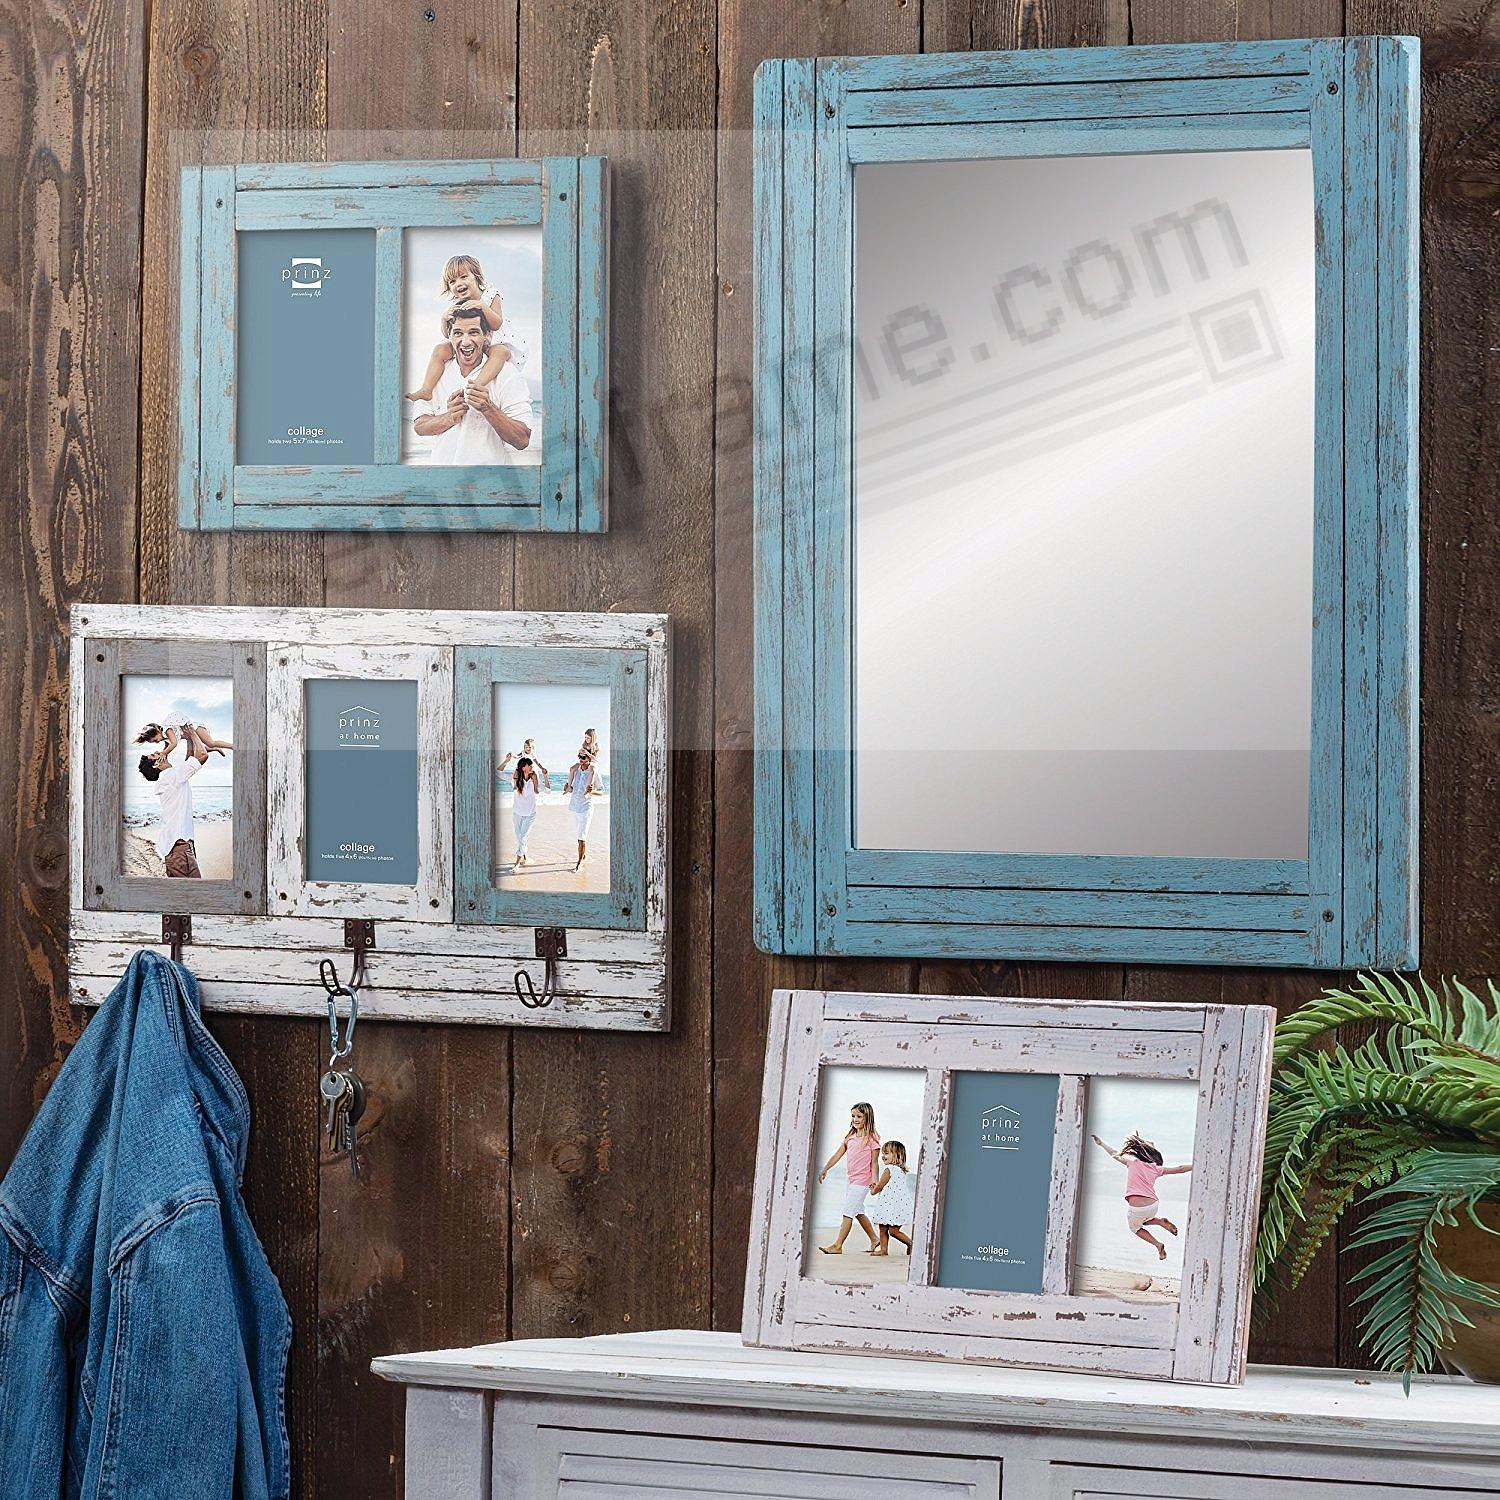 HOMESTEAD Antique White Wood Collage 4x6 Collage Frame by Prinz ...